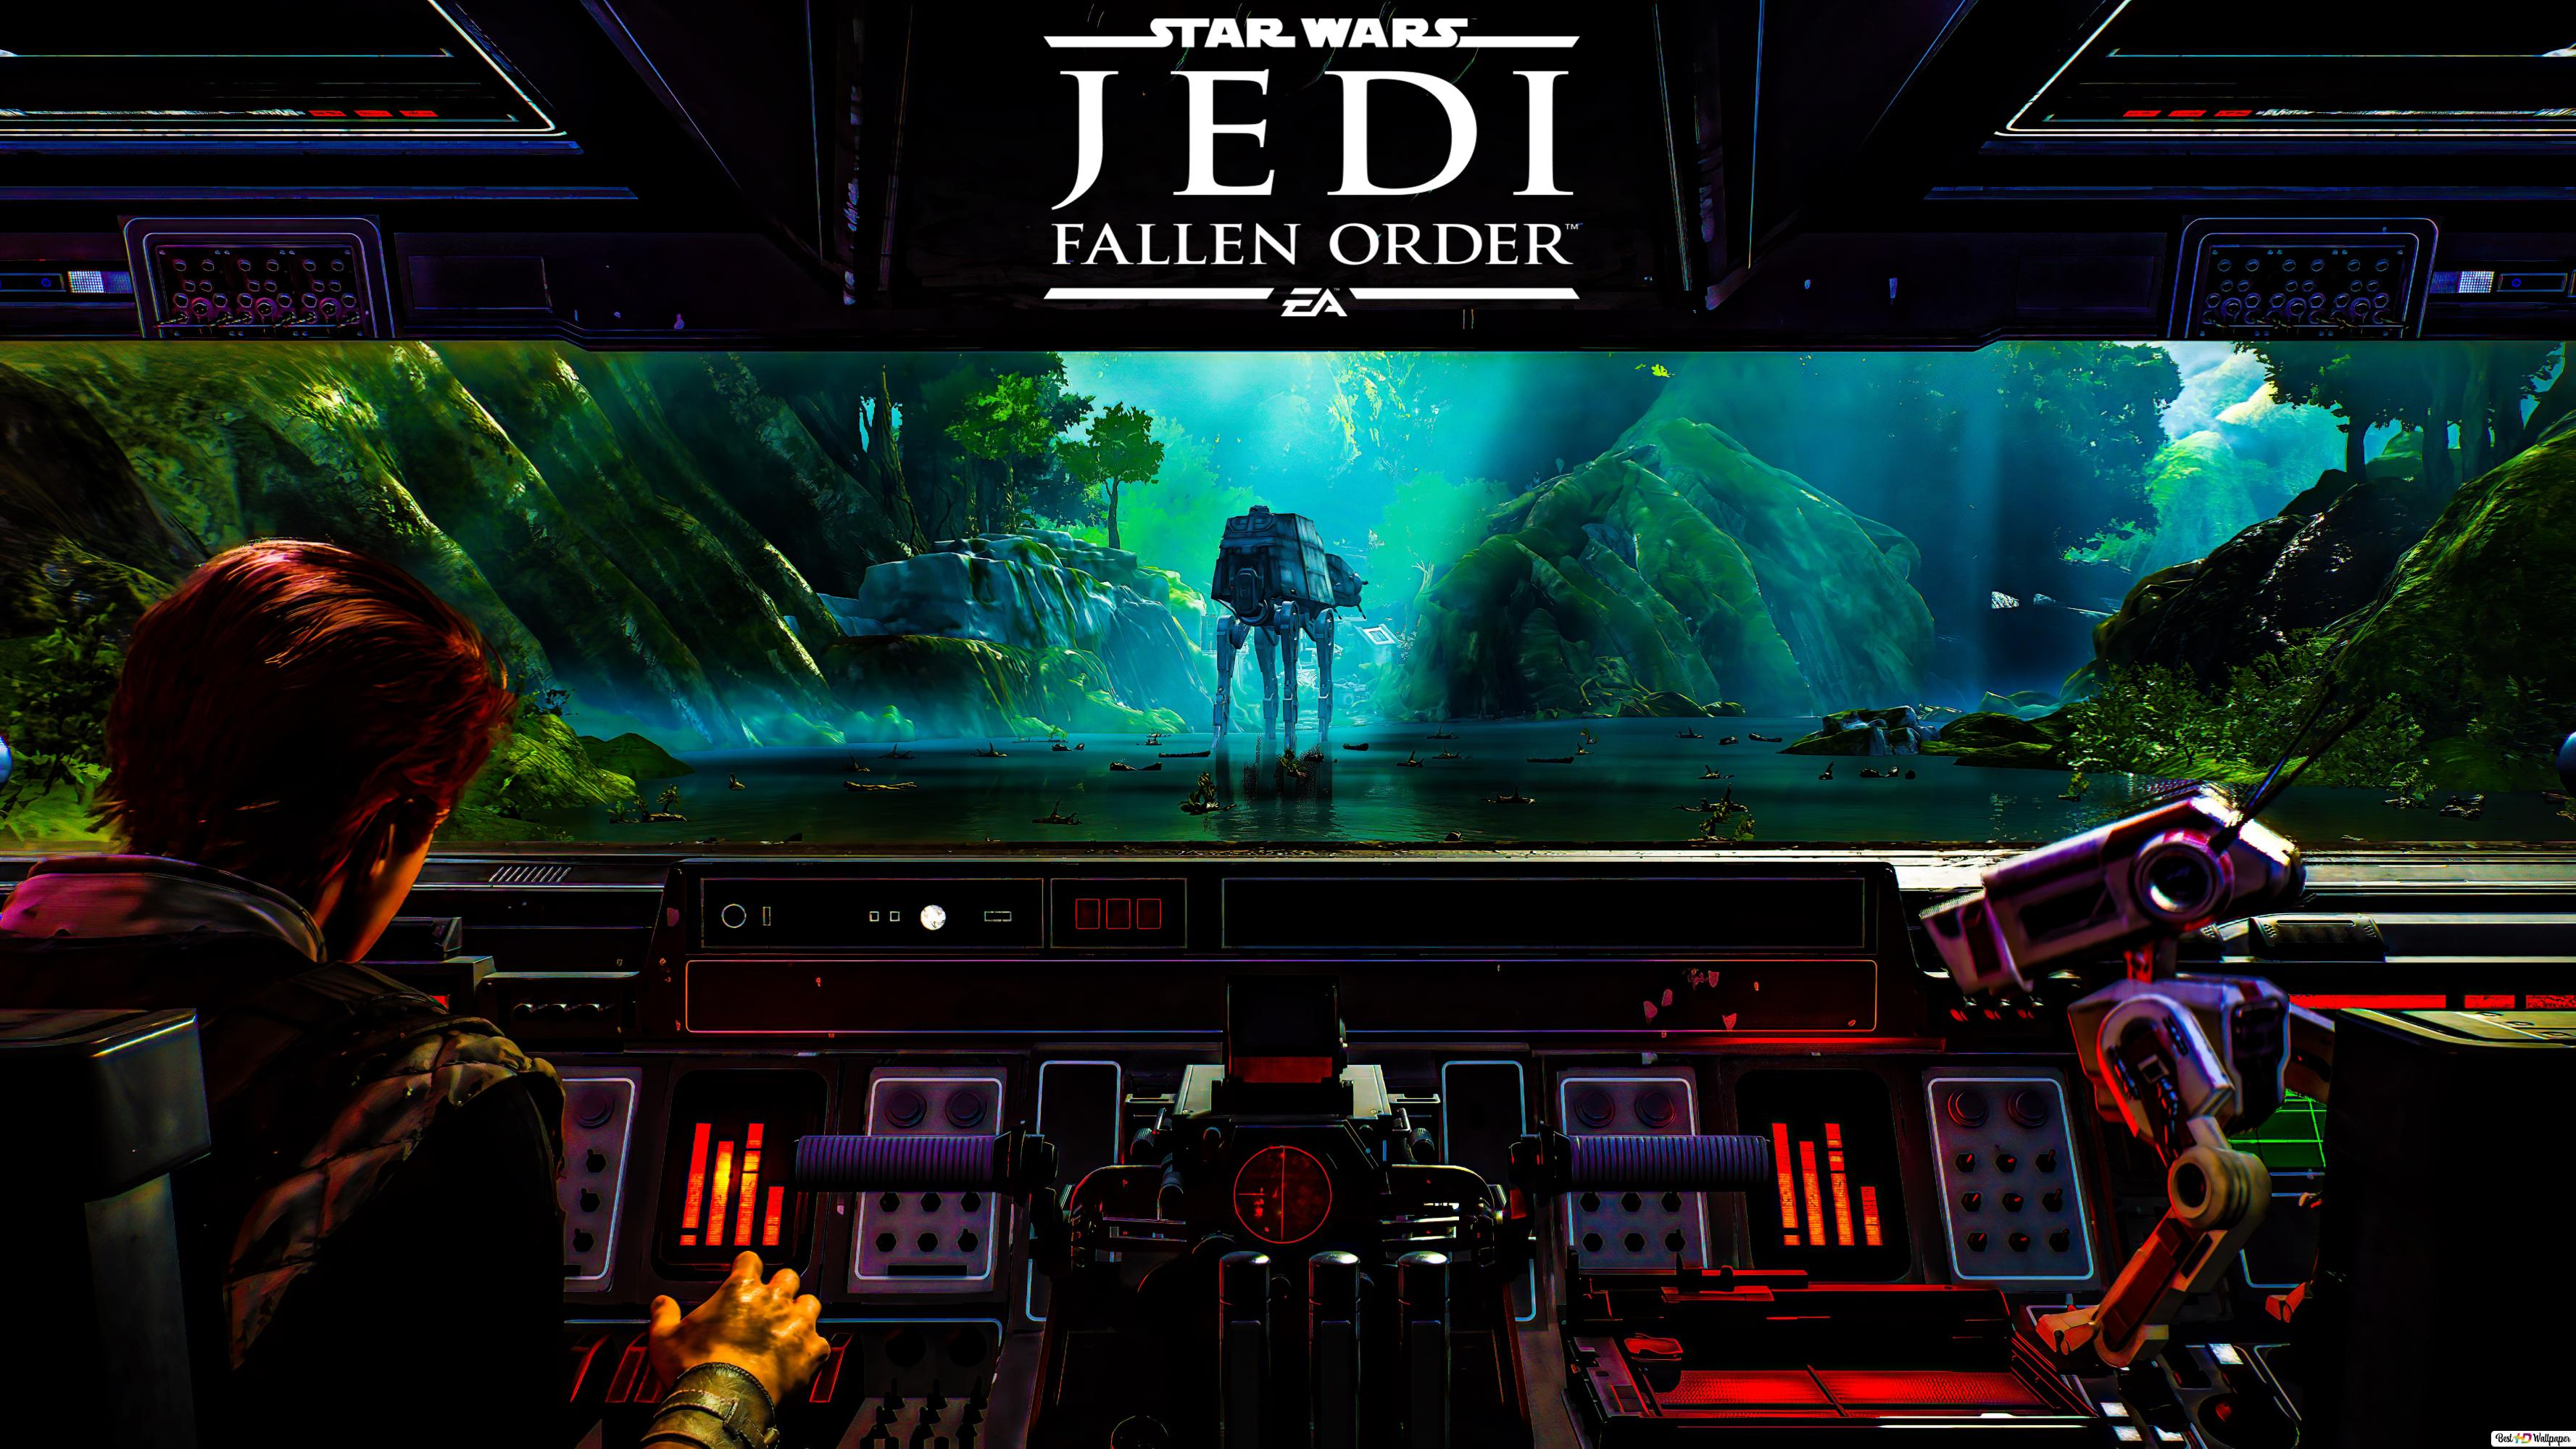 Star Wars Jedi Fallen Order 04 8k 4k Wallpaper Hd Wallpaper Download